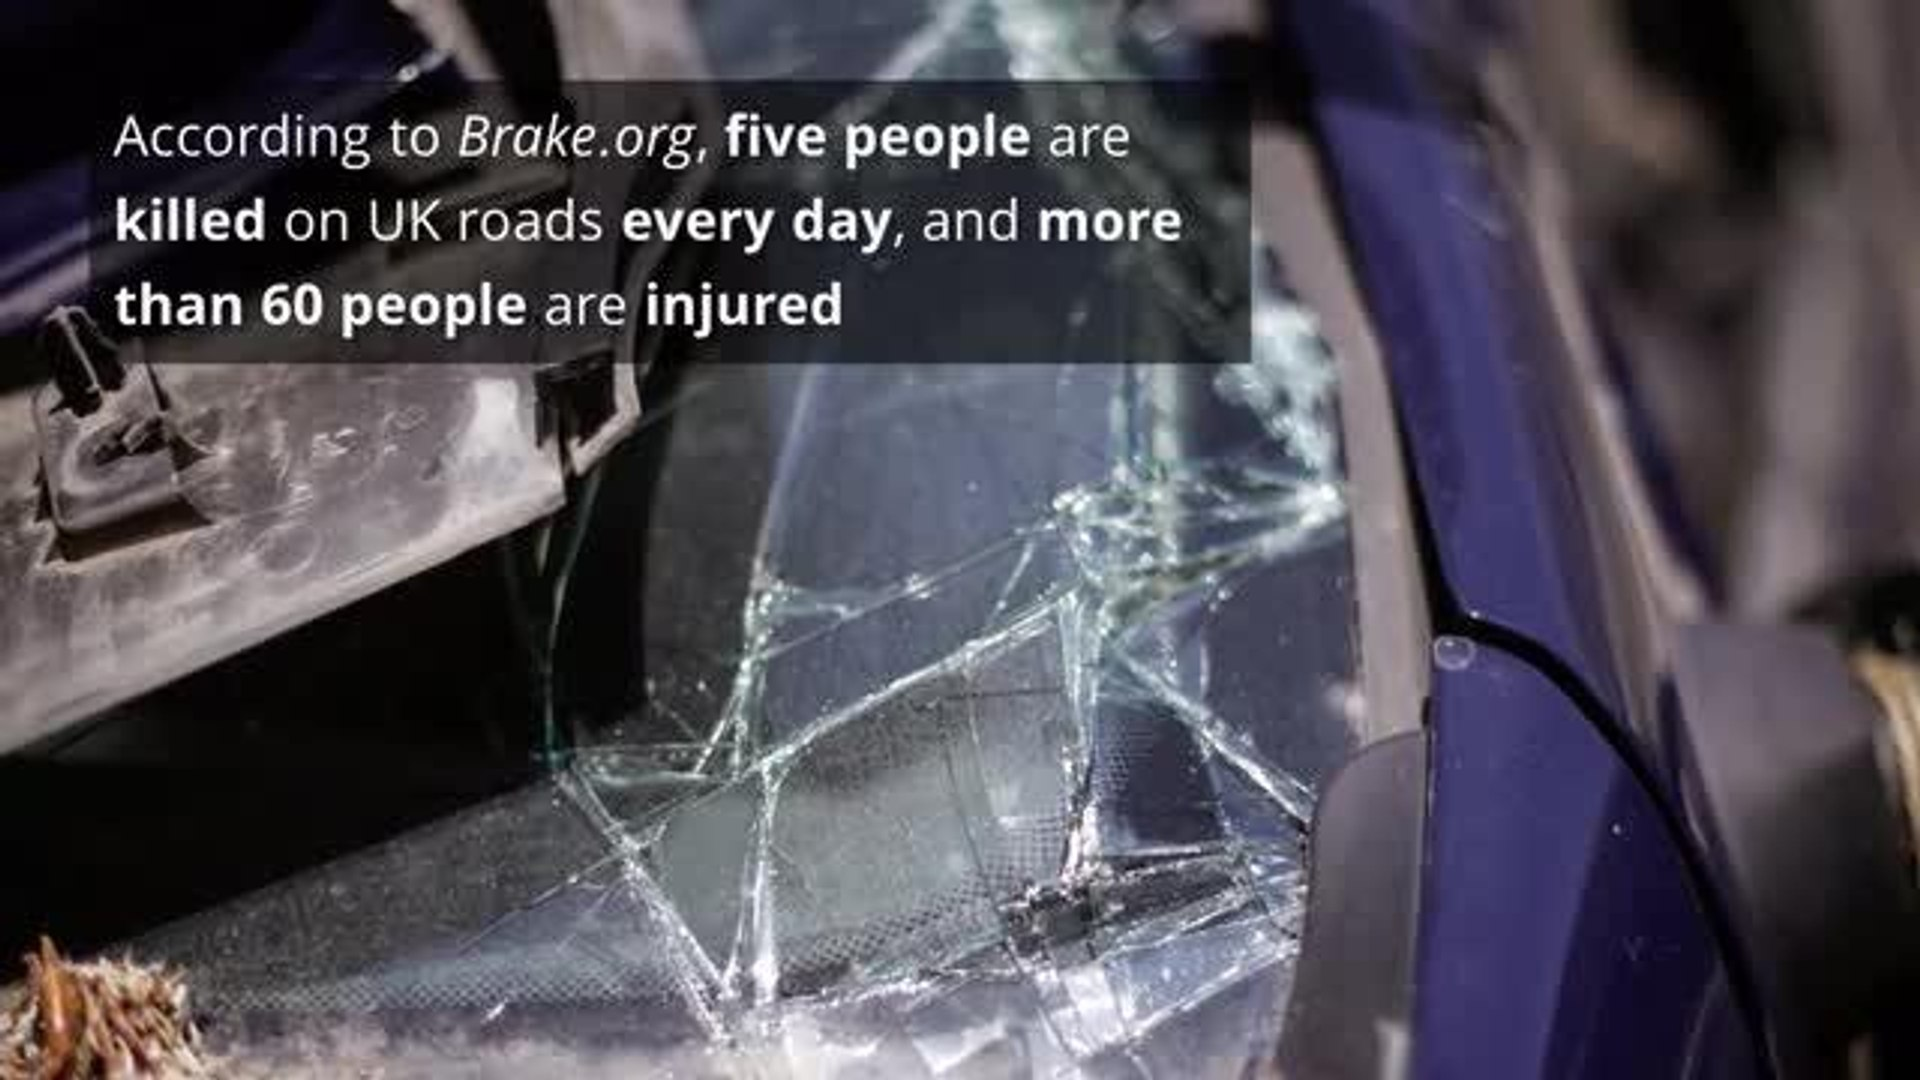 Road crash facts